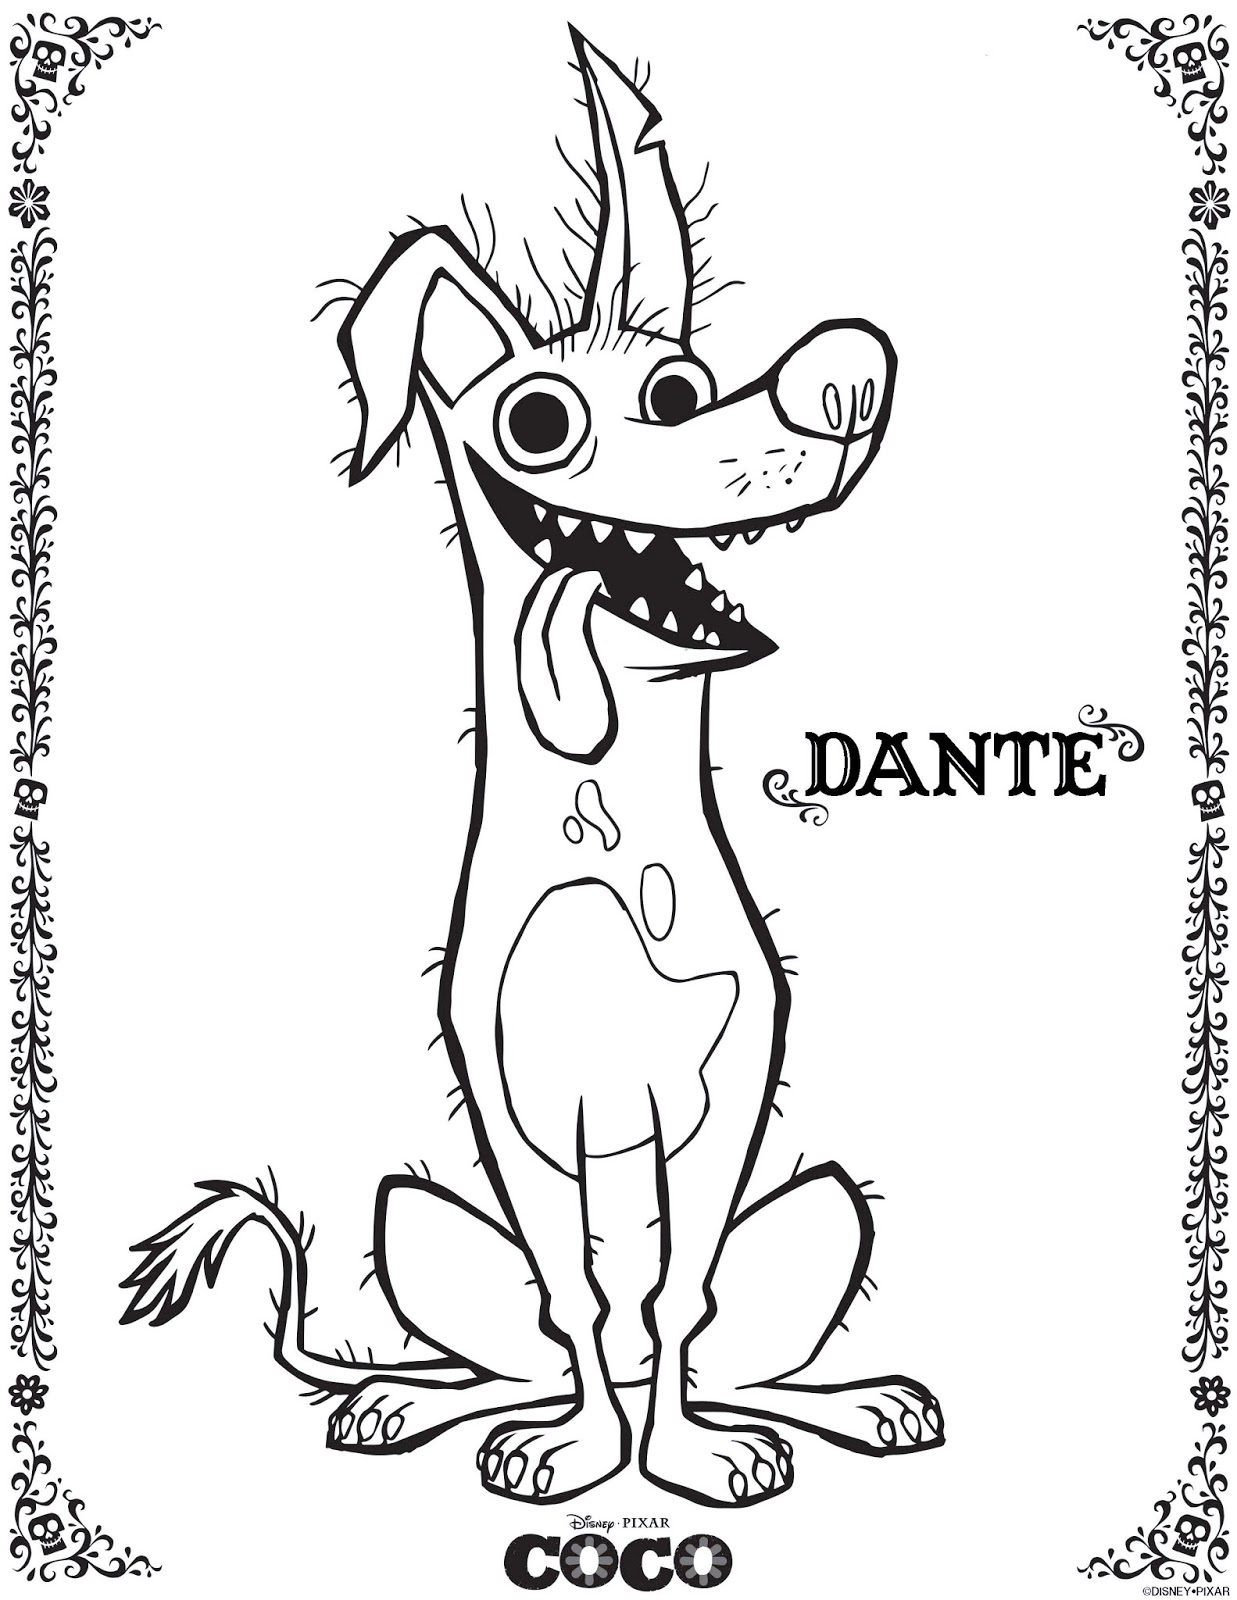 dante coco coloring pages from disney pixar movie